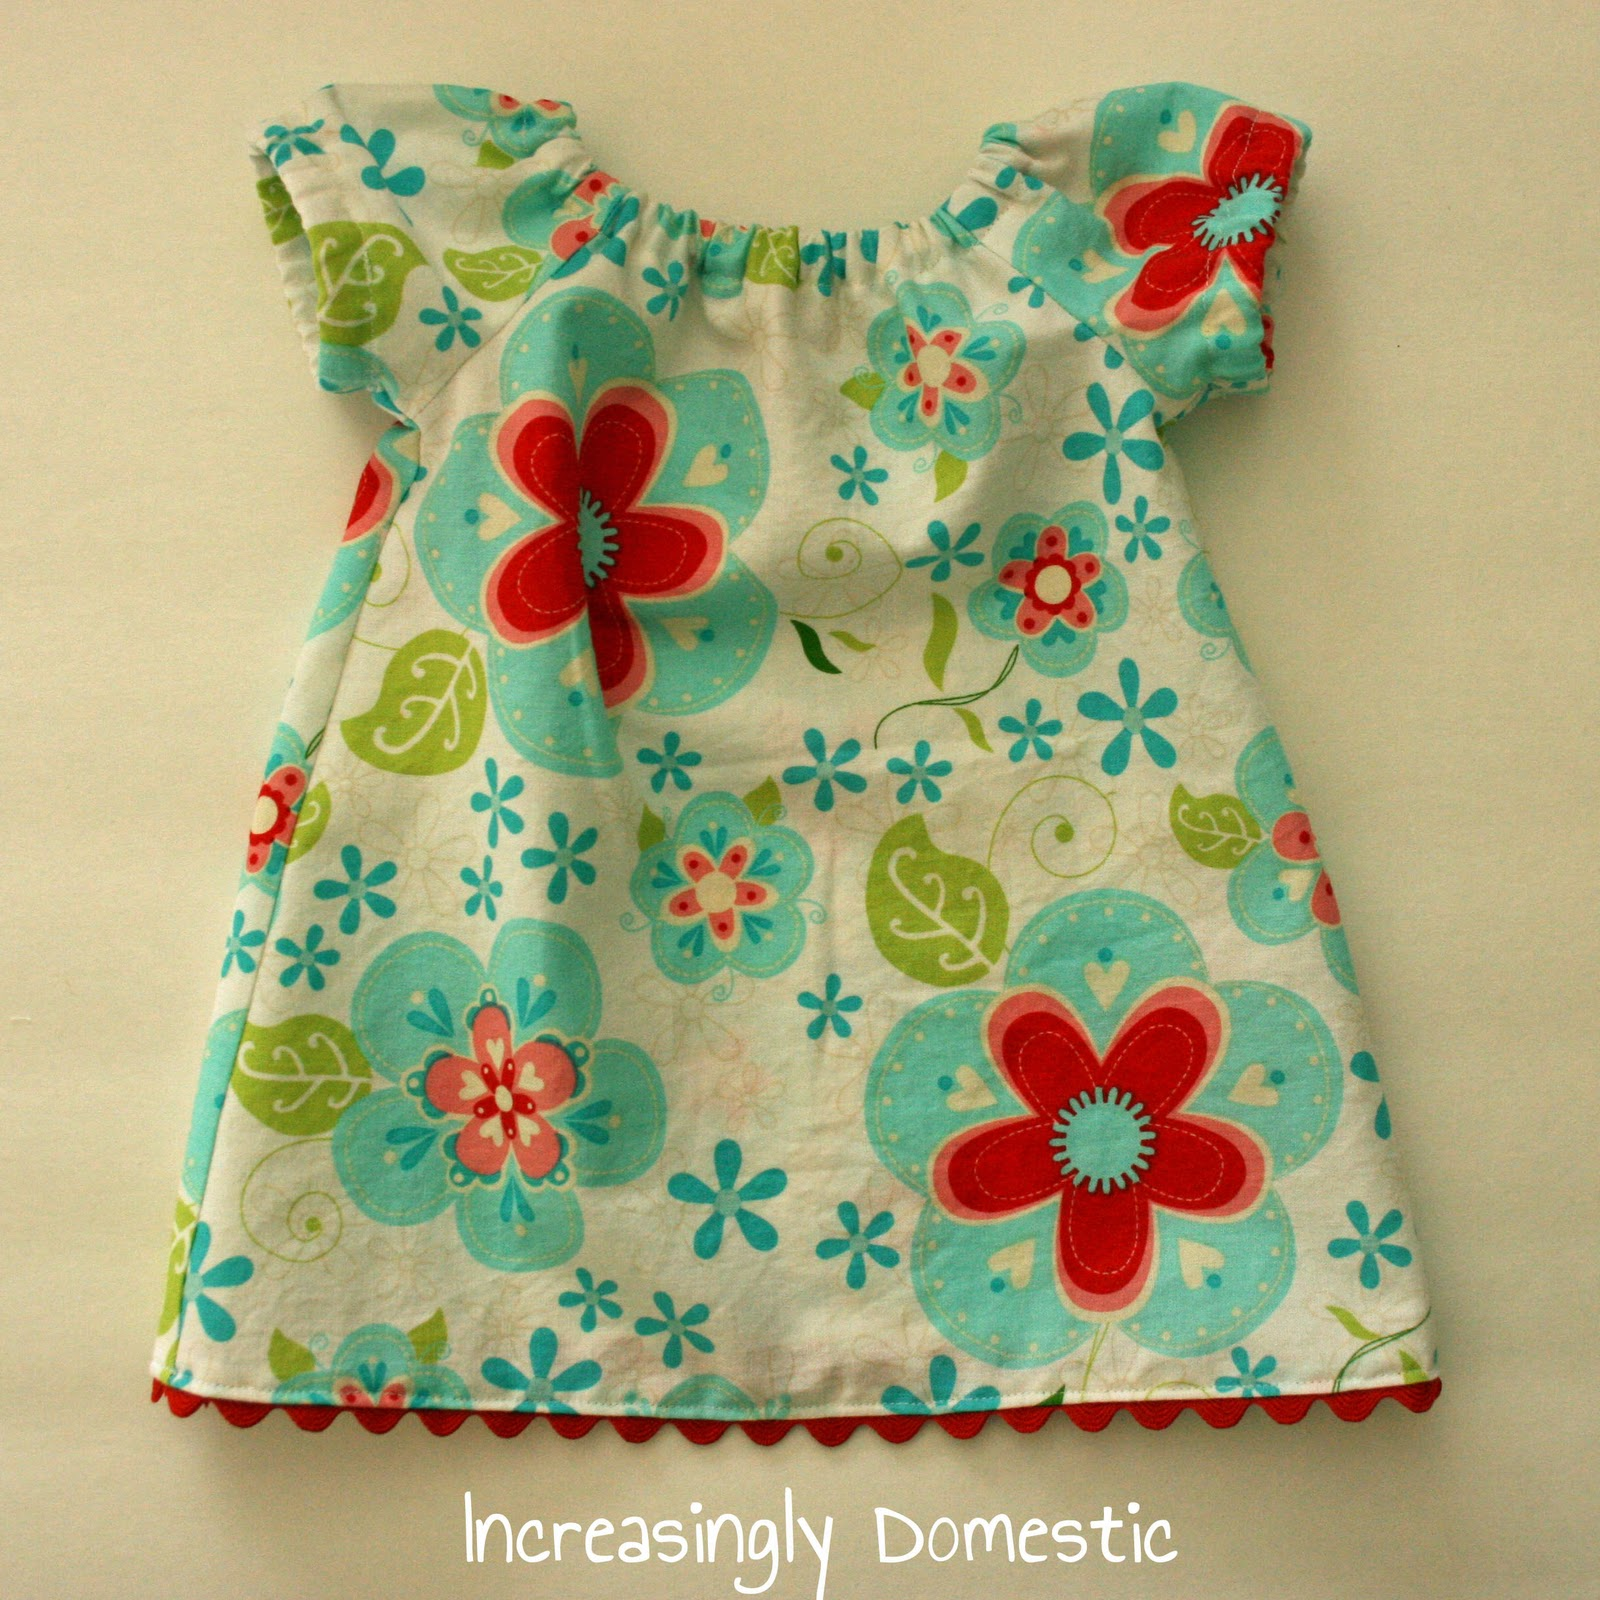 Abby from sew much ado shared this free infant peasant dress pattern